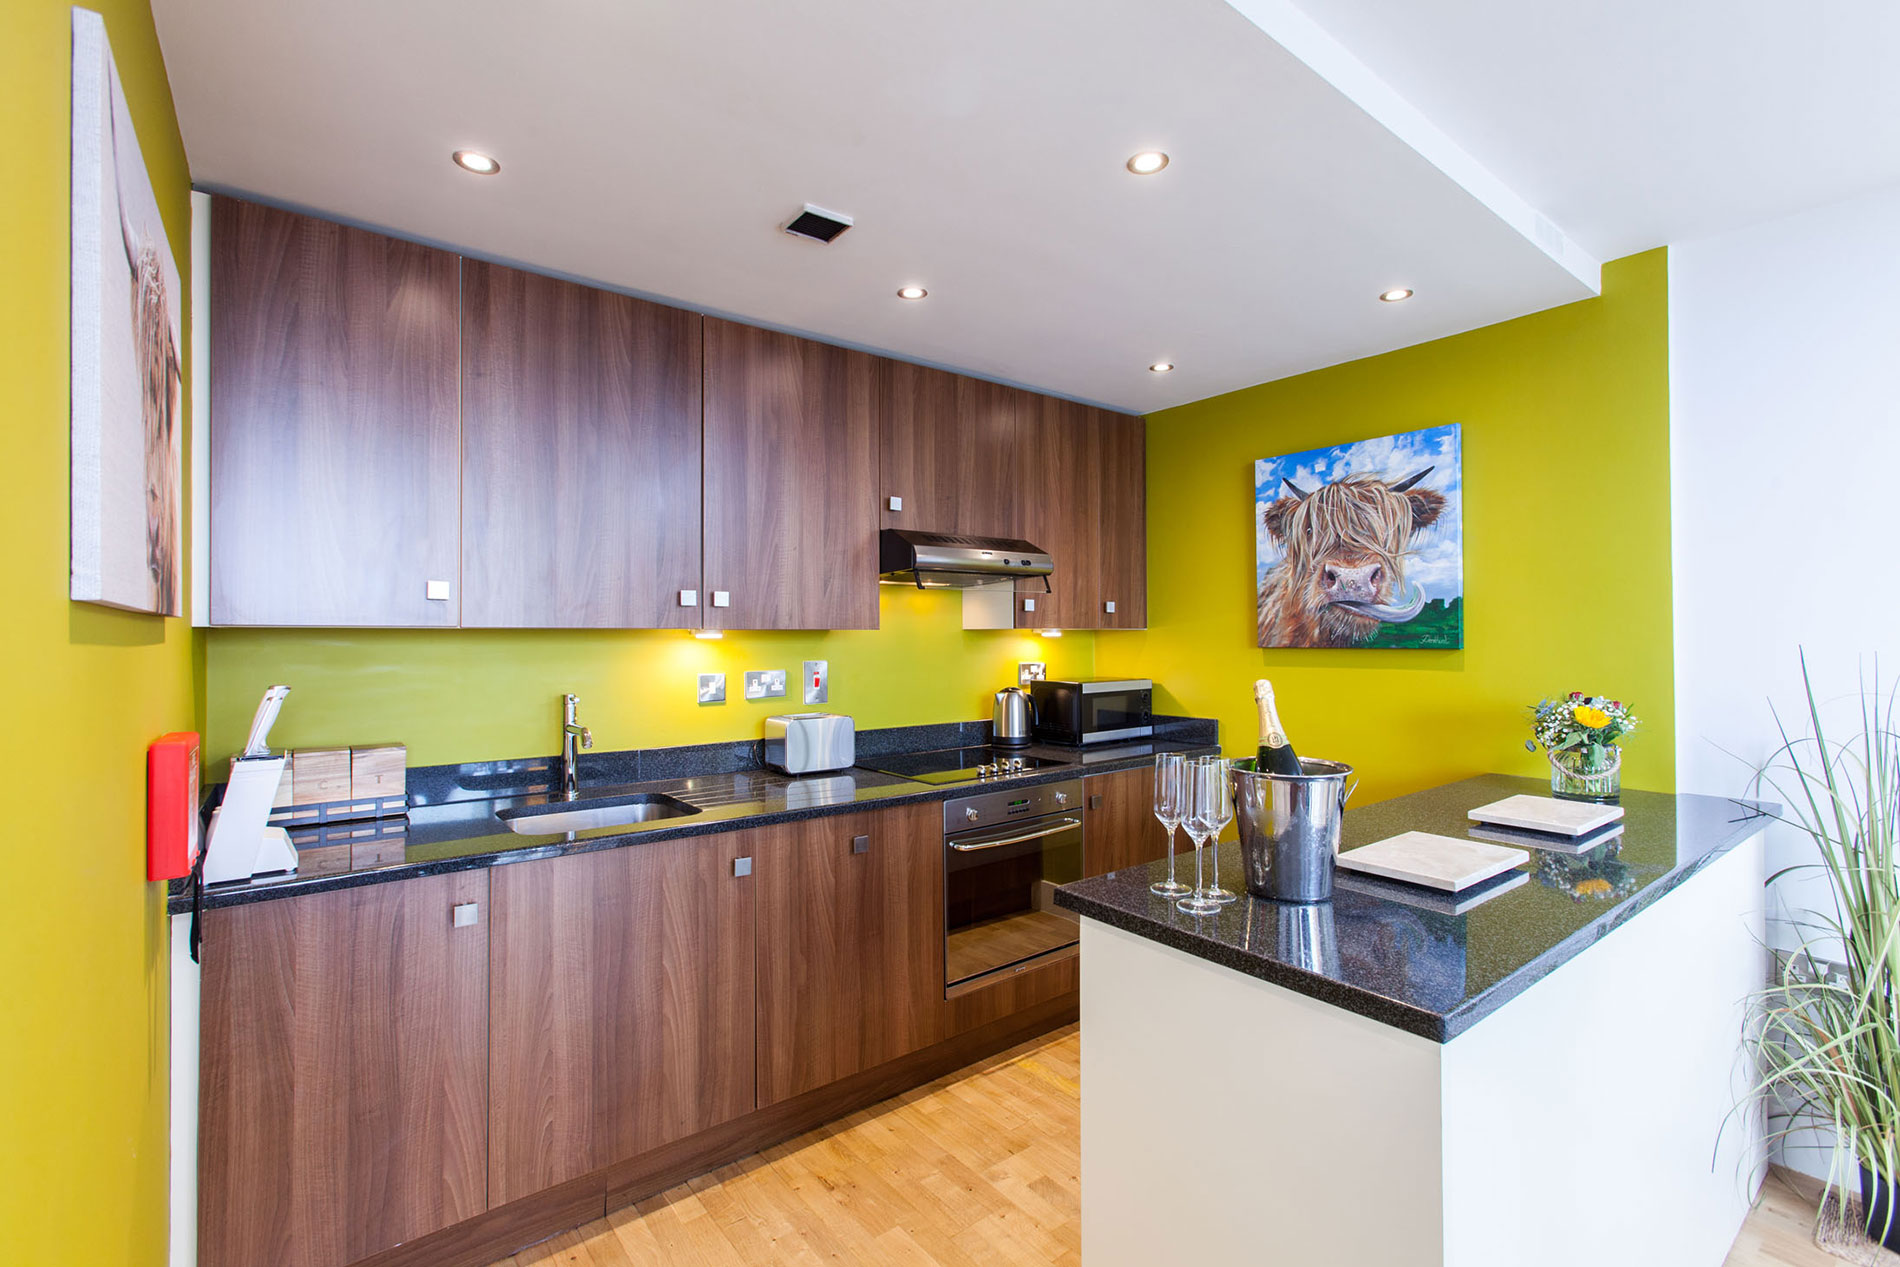 Wooden kitchen at Sinclair Apartments, Centre, Sheffield